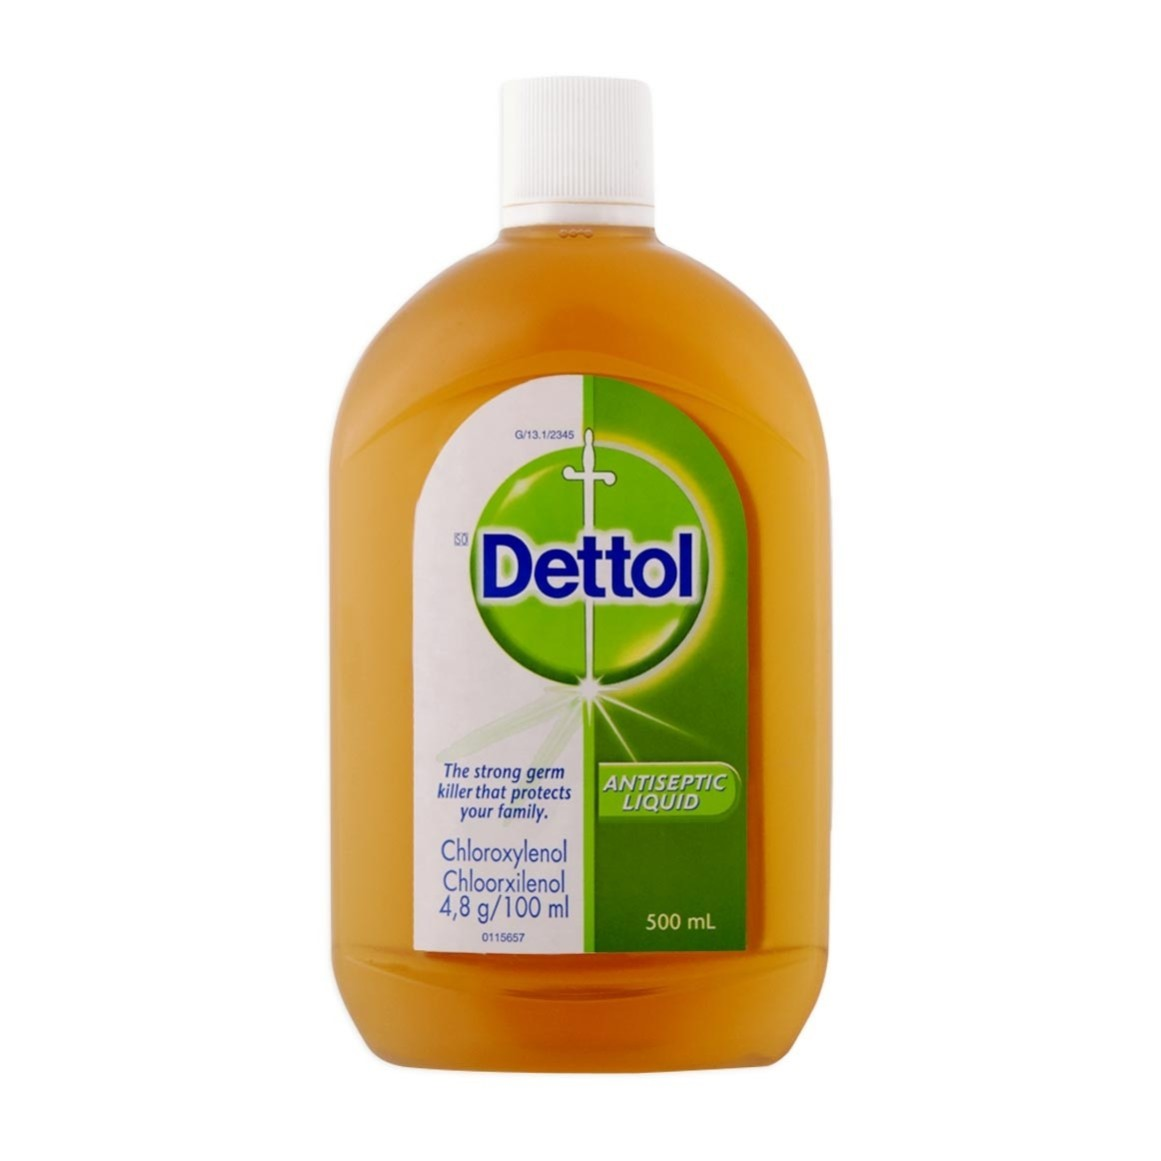 Dettol topical antiseptic liquid, 16.9 oz